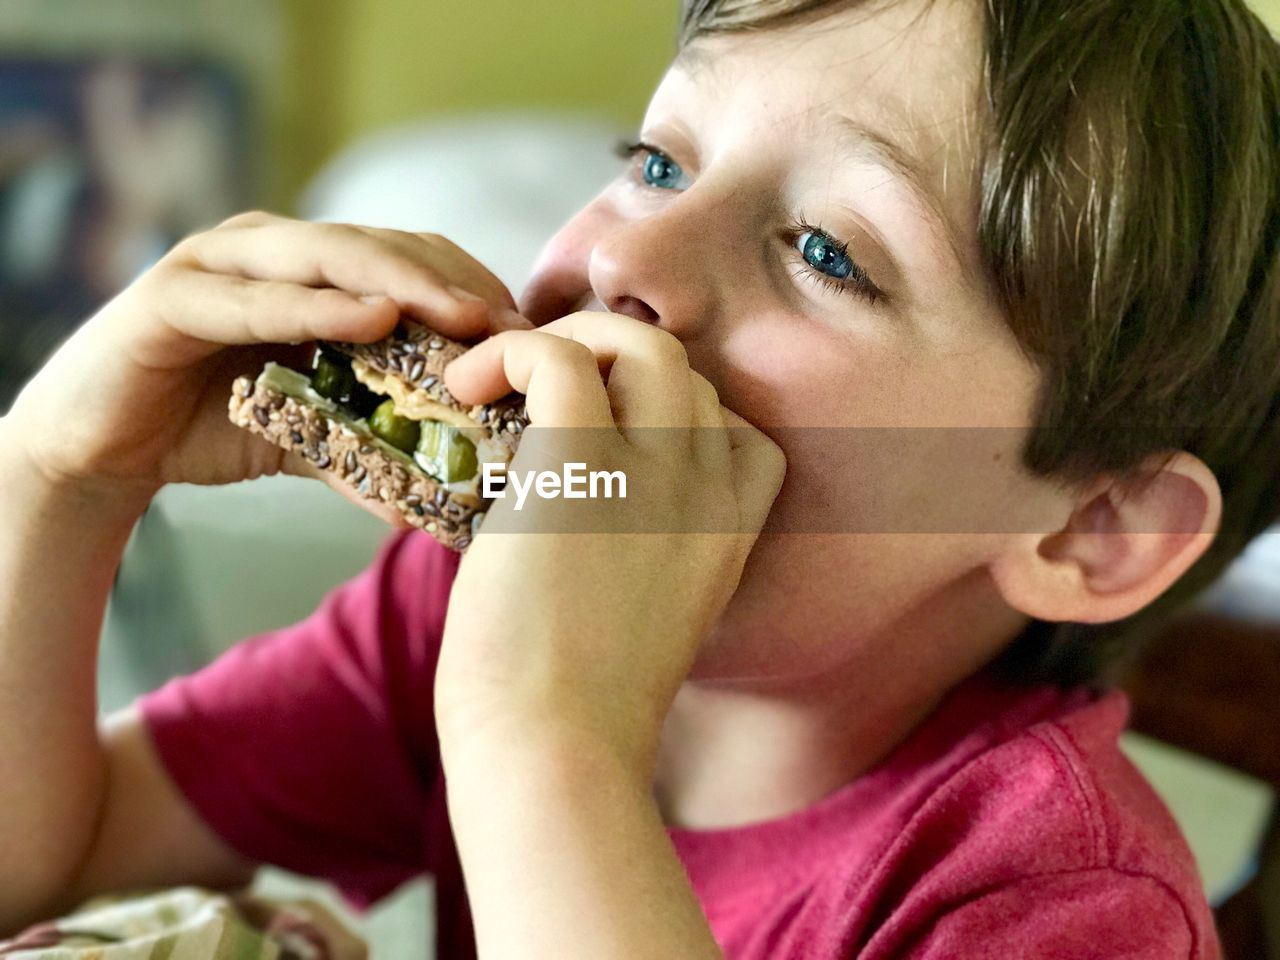 portrait, real people, headshot, close-up, food, food and drink, eating, focus on foreground, one person, child, lifestyles, boys, childhood, sandwich, indoors, holding, looking at camera, teenager, pre-adolescent child